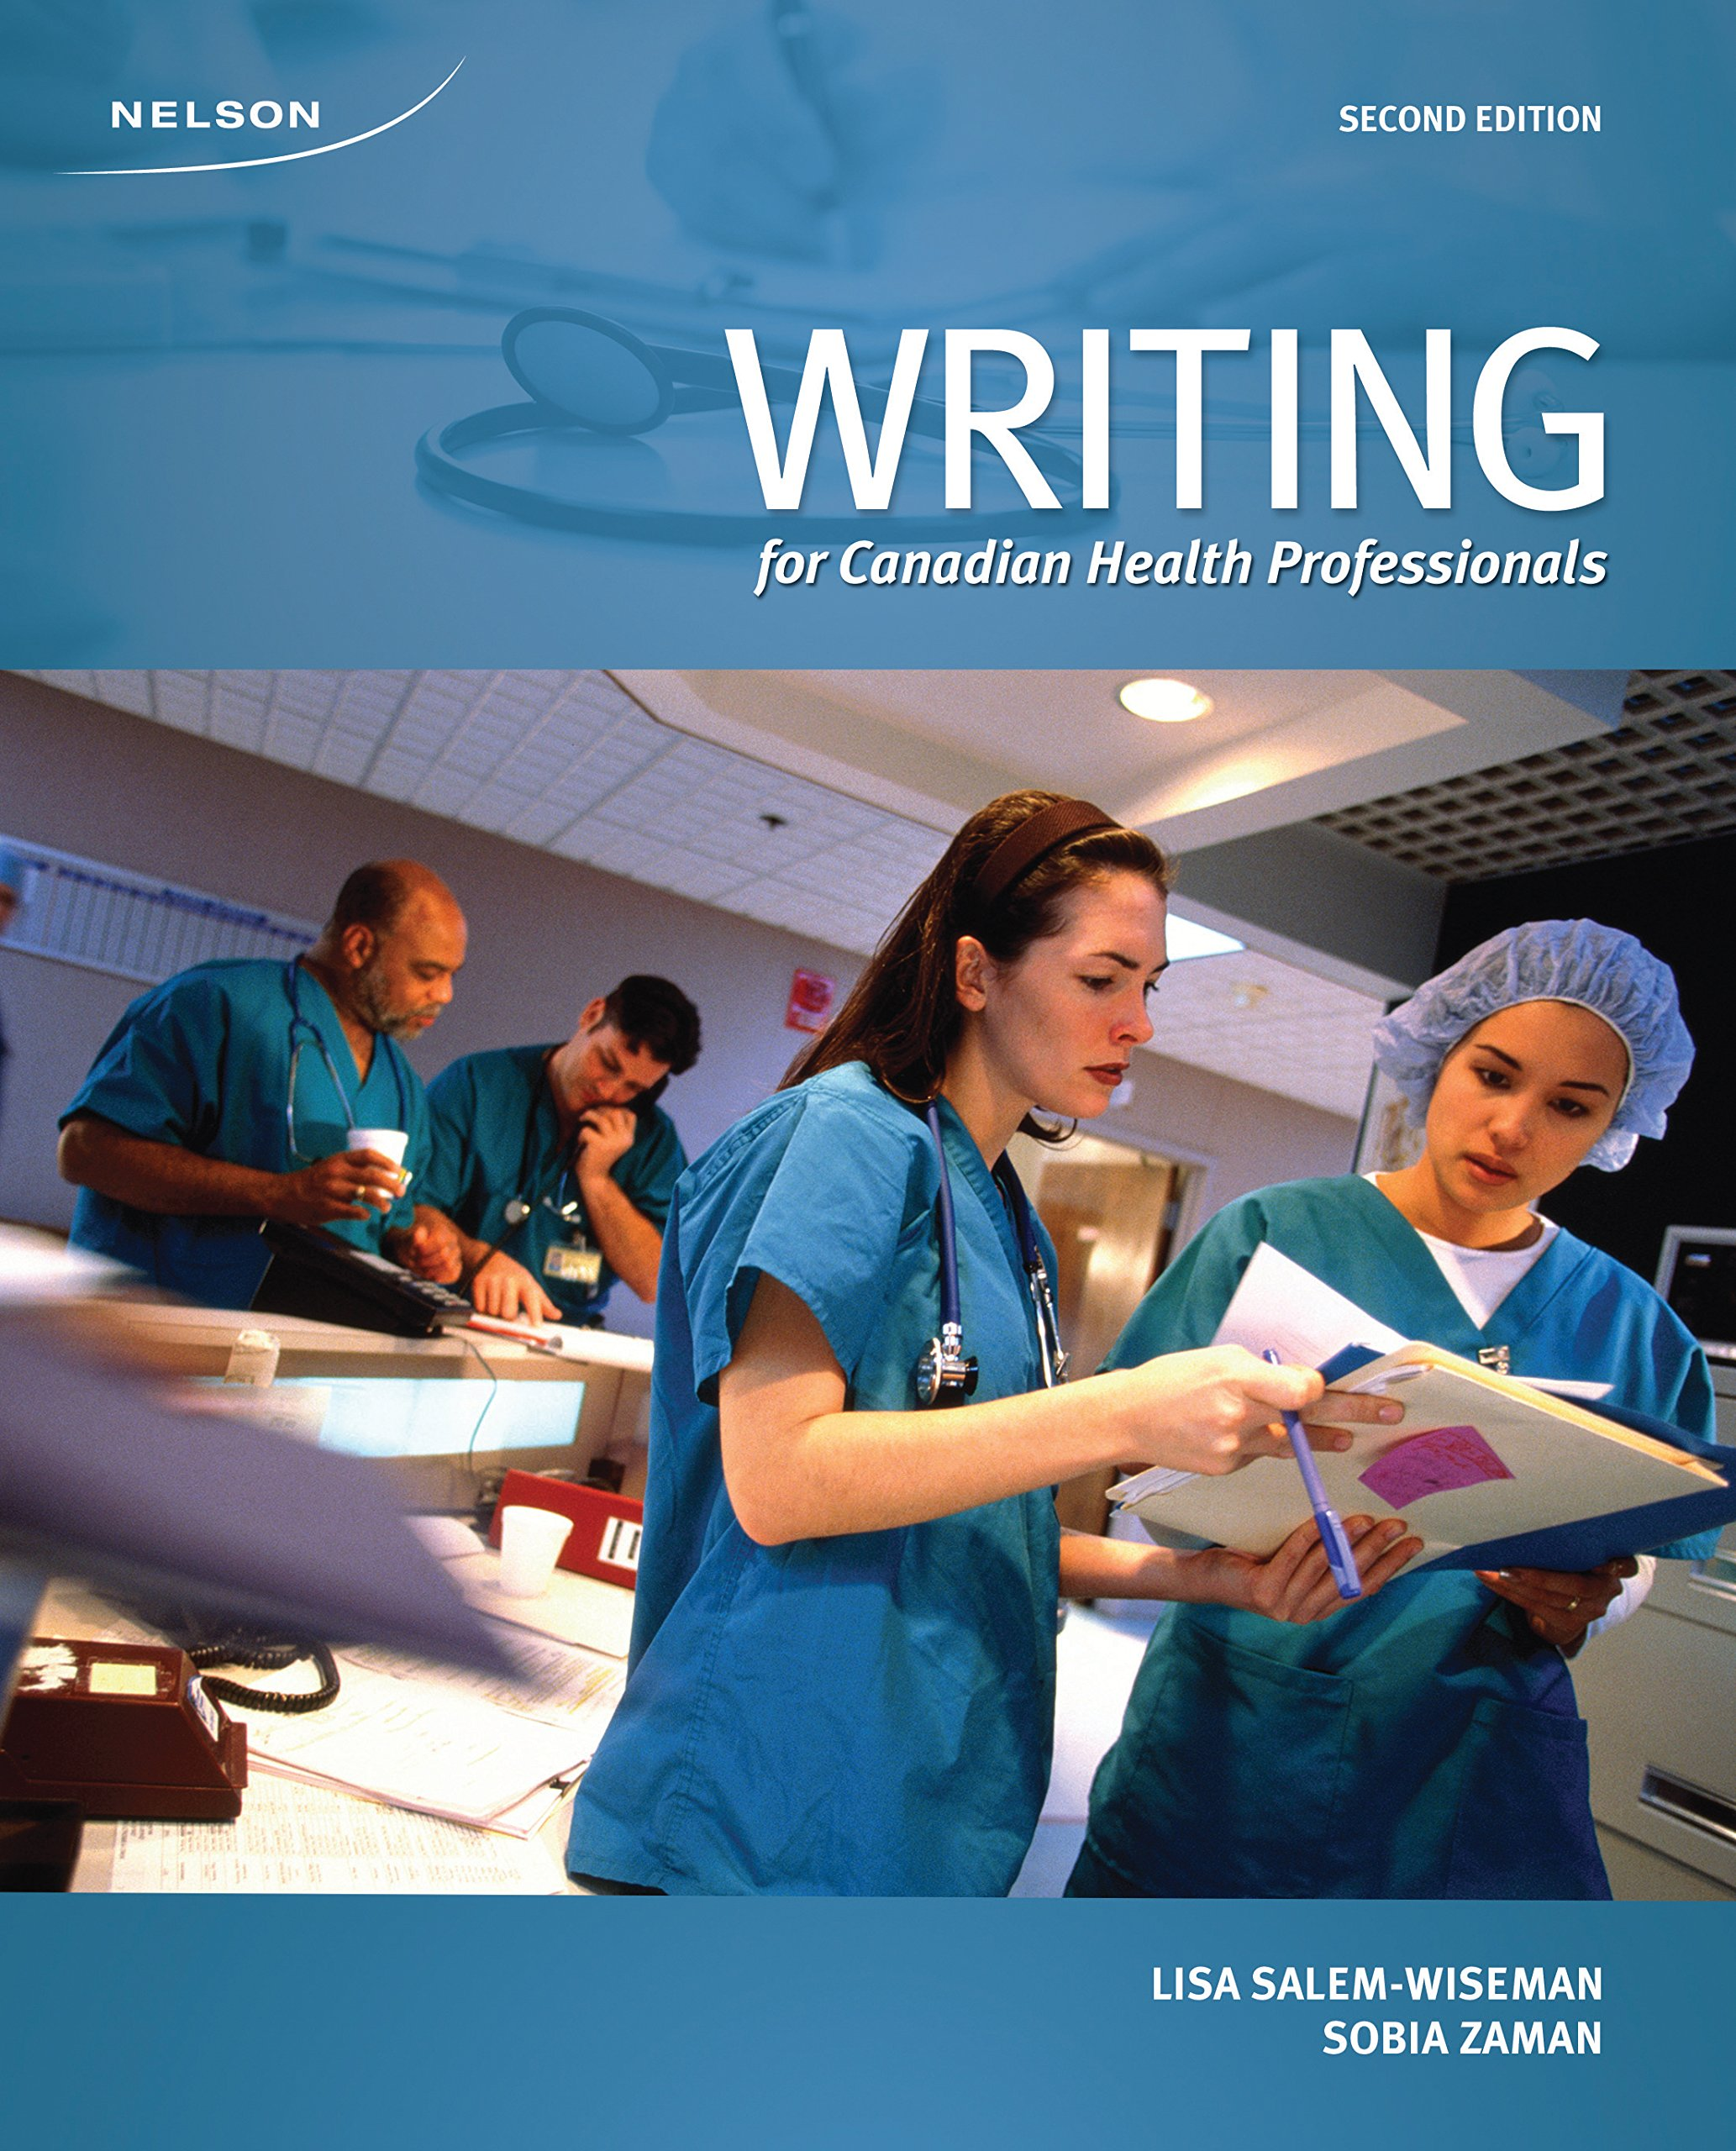 Writing for Canadian Health Professionals, 2nd Edition - See more at: http://www.nelson.com/catalogue/productOverview.do?Ntt=16566646704892079210979474001062236486&N=197+4294949473&Ntk=P_EPI#sthash.lbDduvxG.dpuf pdf